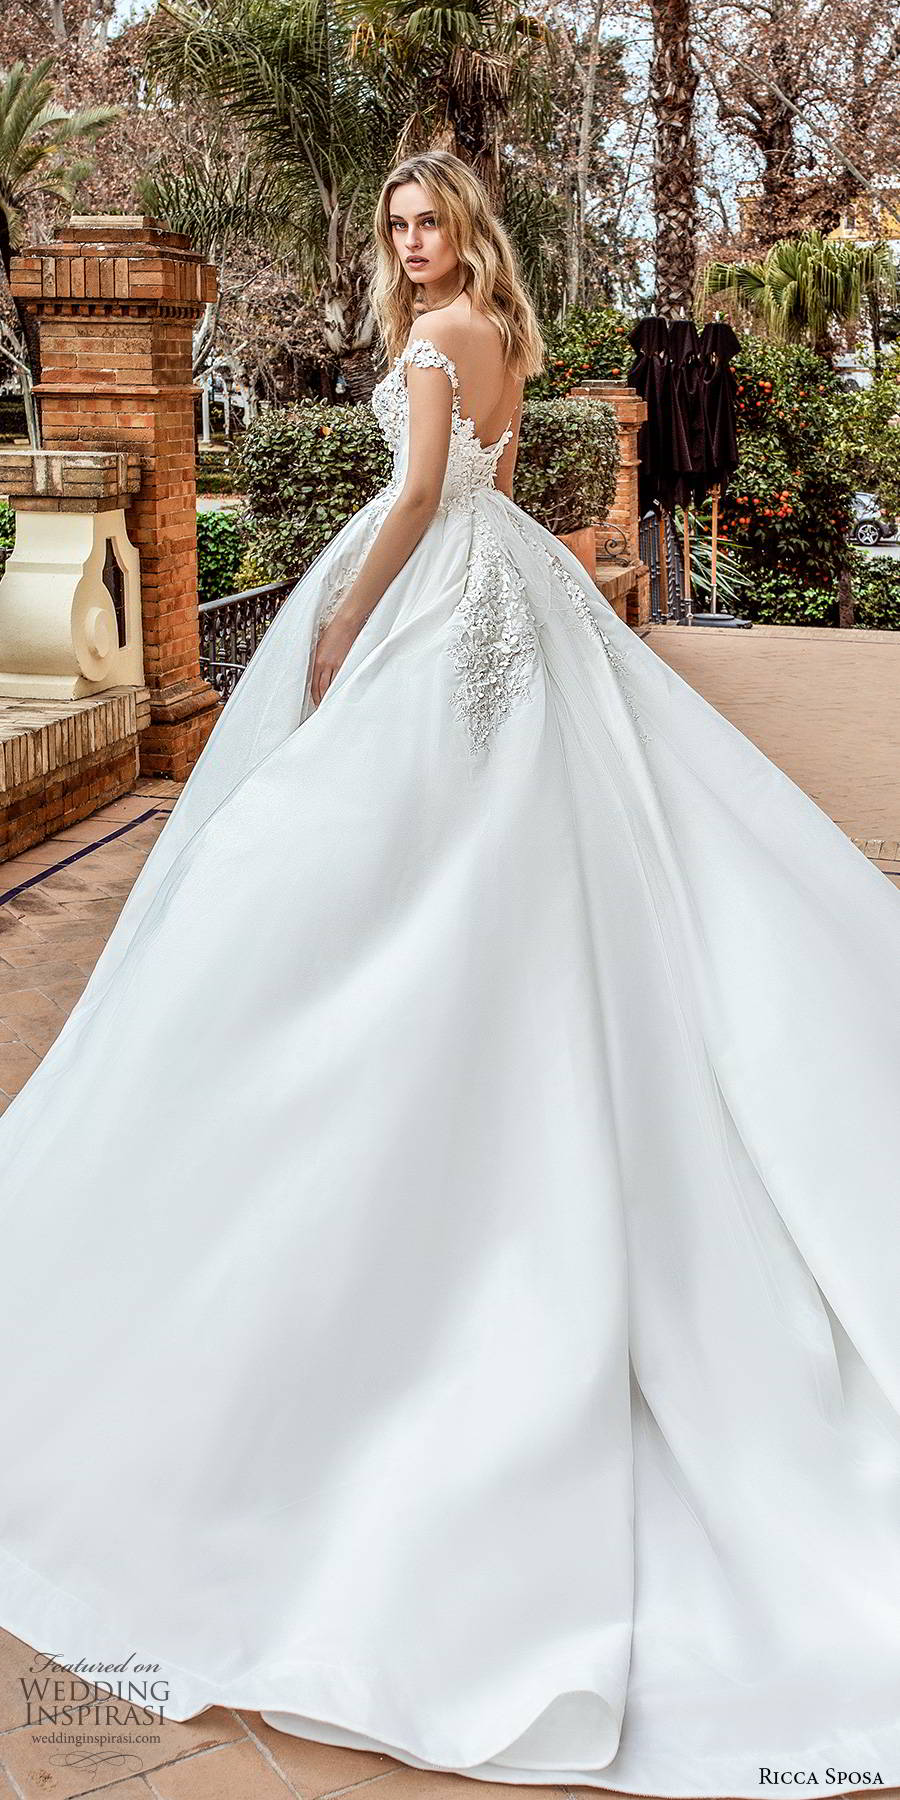 ricca sposa 2019 bridal illusion cap sleeves off shoulder sweetheart neckline fully embellished a line ball gown romantic wedding dress scoop back cathedral train (11) bv